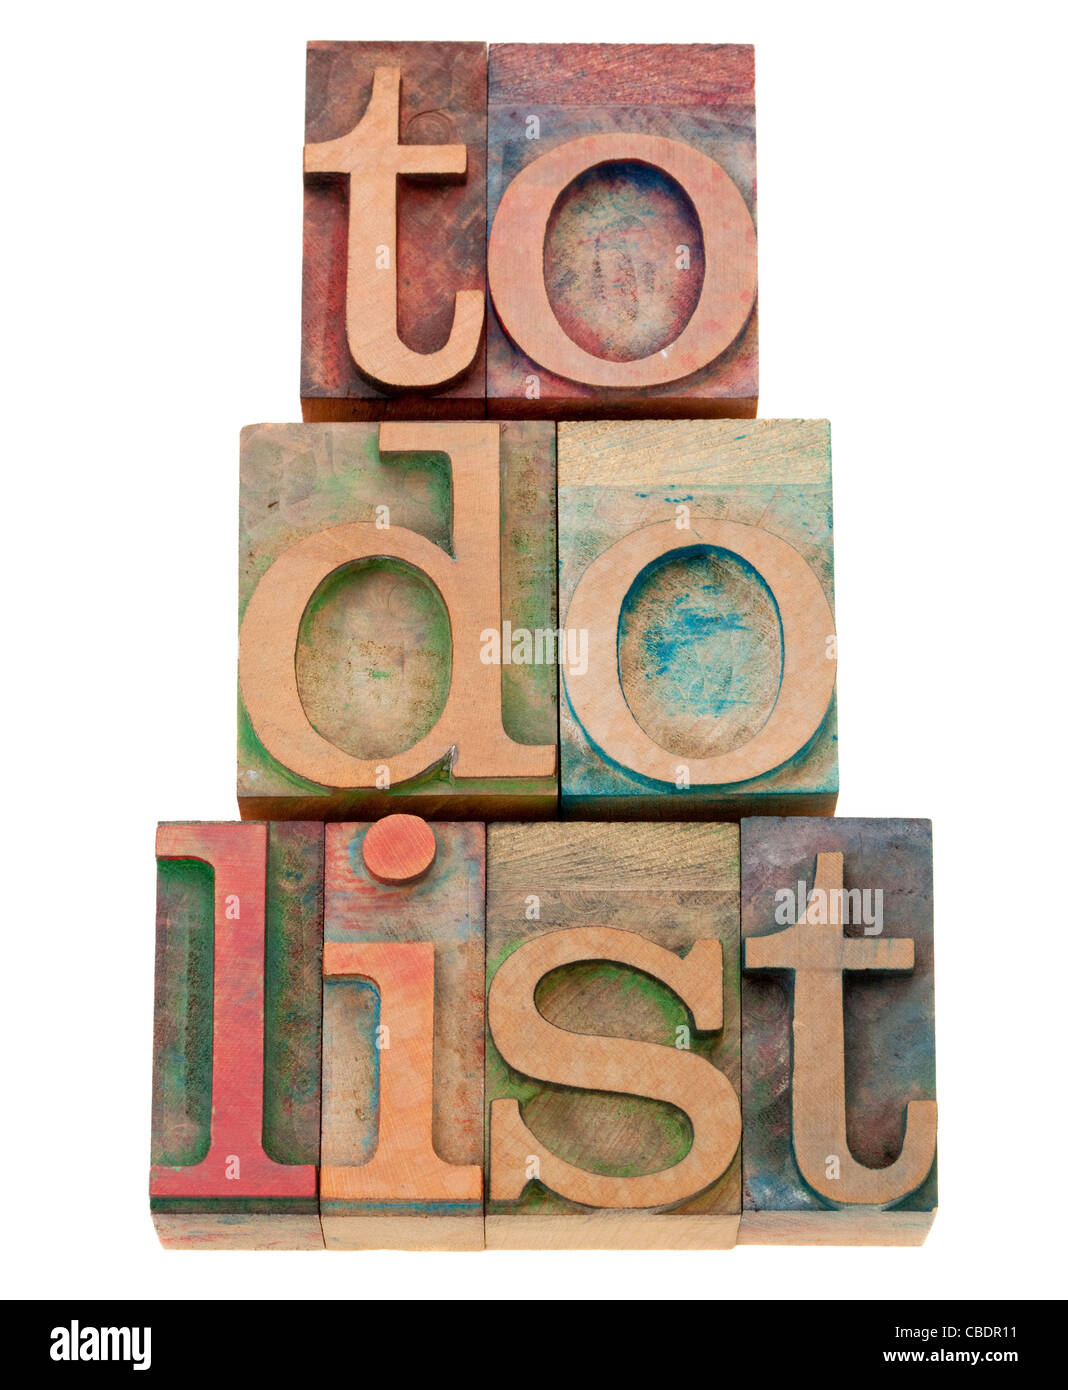 to do list - task management concept - isolated text in vintage wood letterpress printing blocks - Stock Image